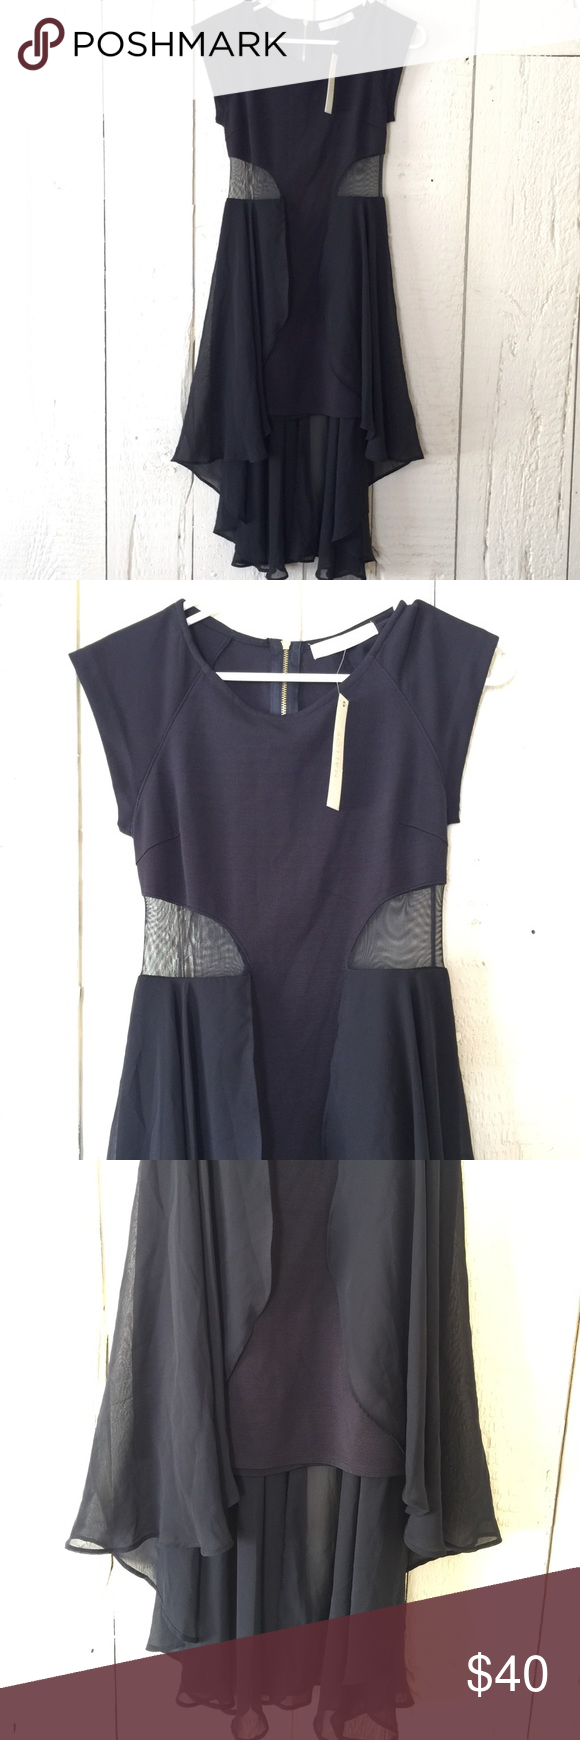 Bnwt Malloy Black Dress With Sheer Sides Clothes Design Dresses Fashion Design [ 1740 x 580 Pixel ]